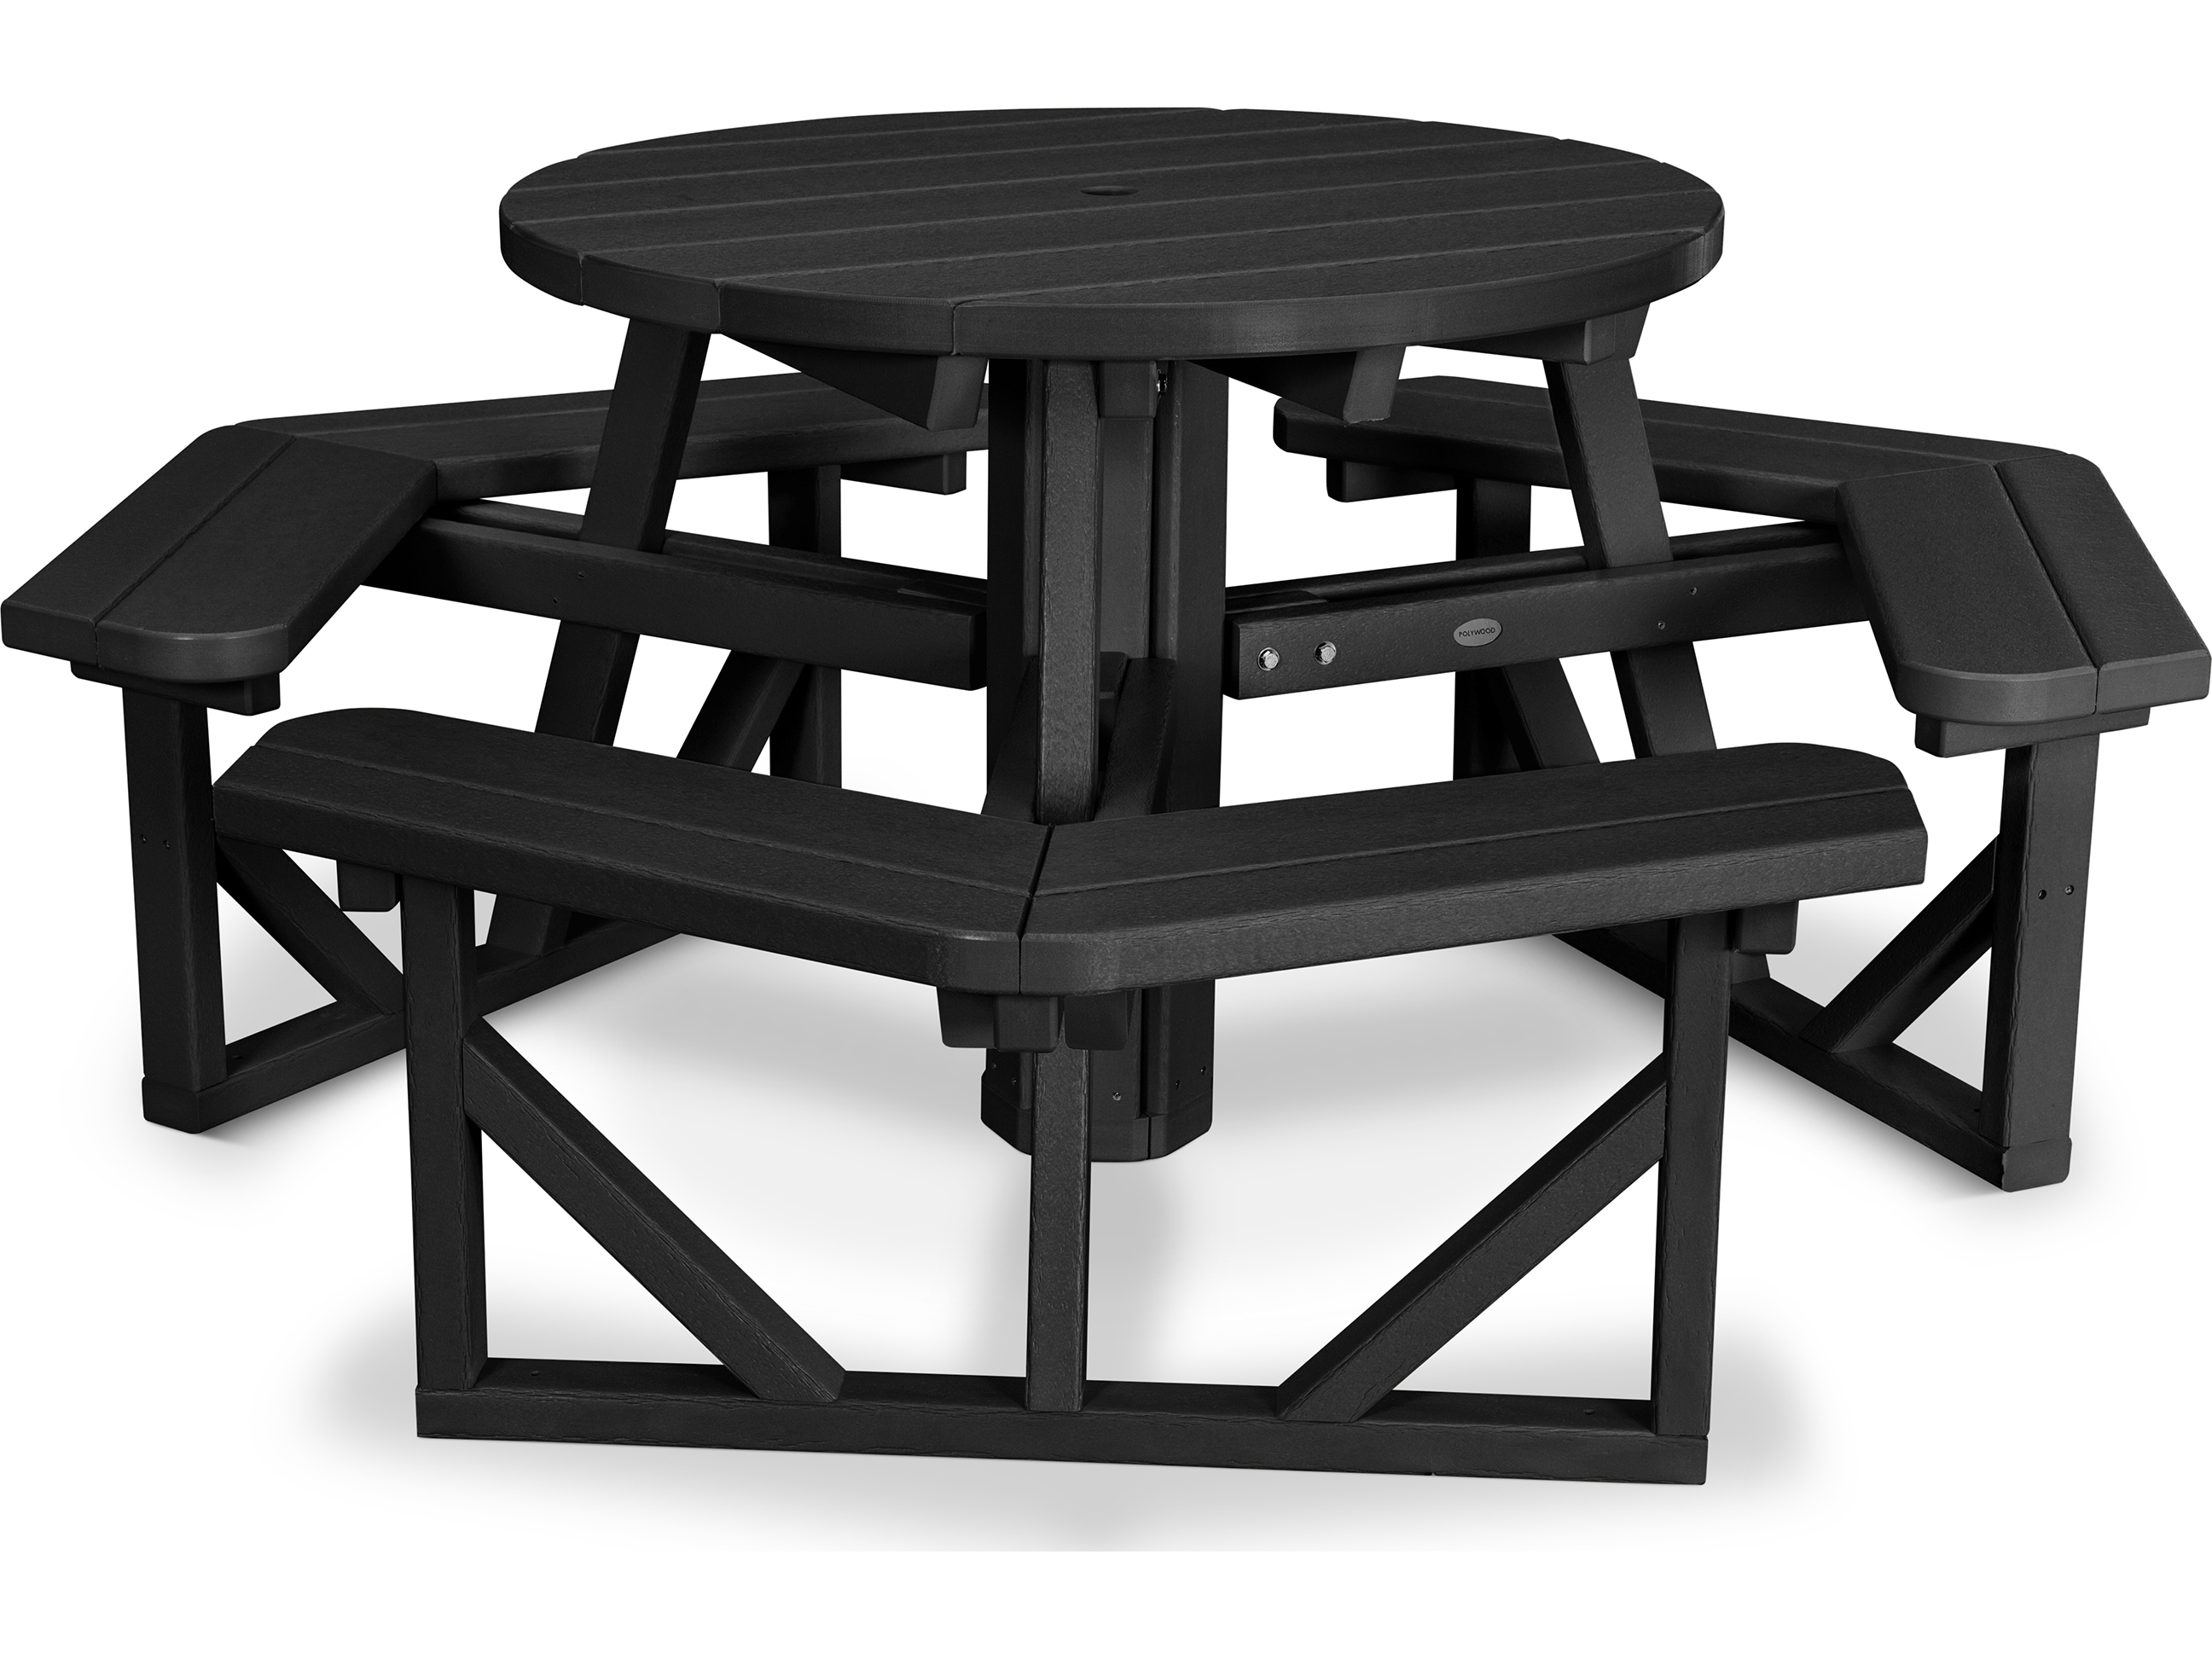 Polywood 174 Park Recycled Plastic 36 Round Picnic Table Ph36